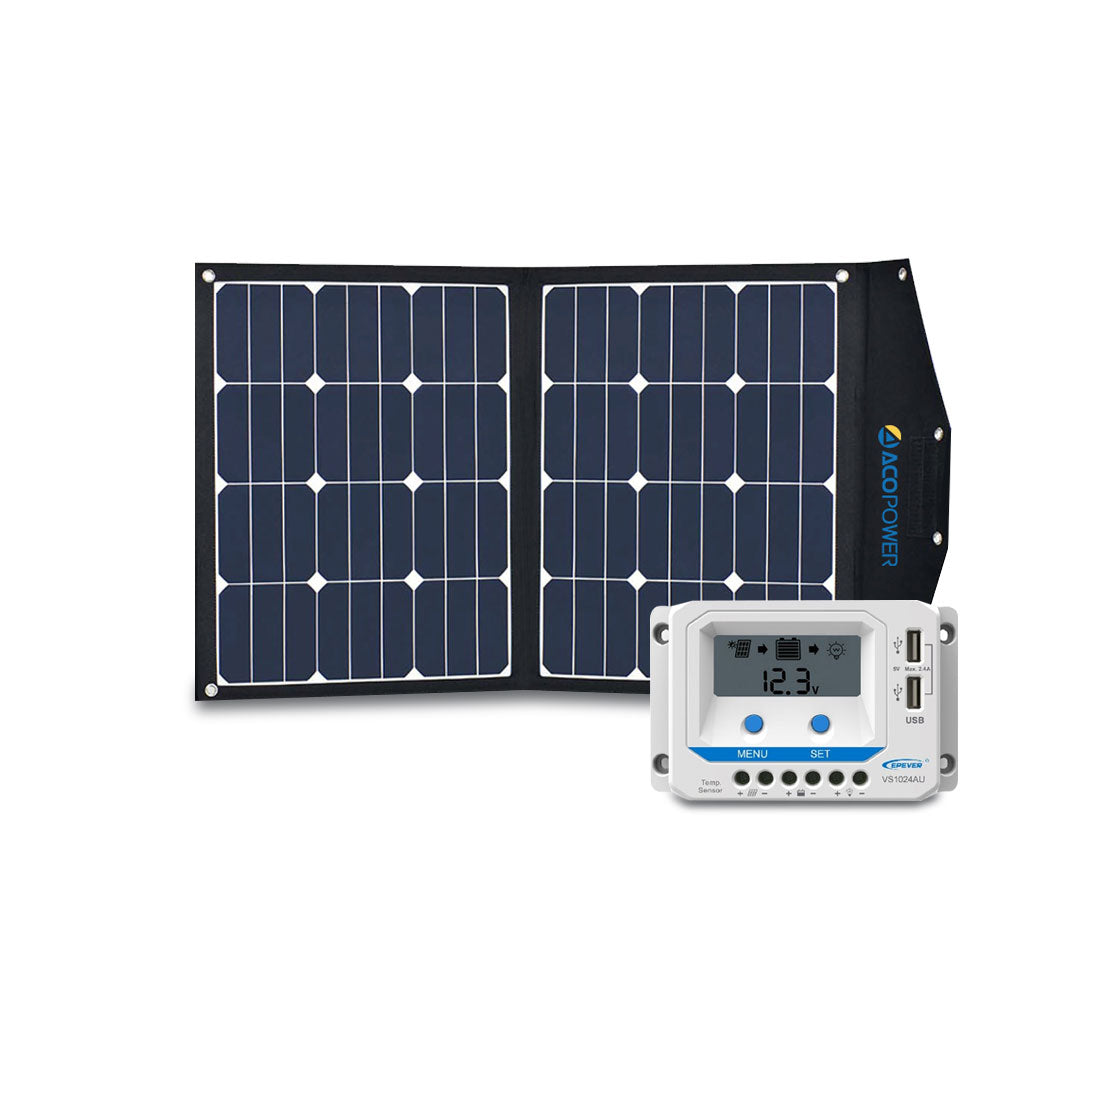 cca4d35d2cb2 ACOPOWER 80W Portable Solar Panel, 12V Foldable Solar Charger with ...